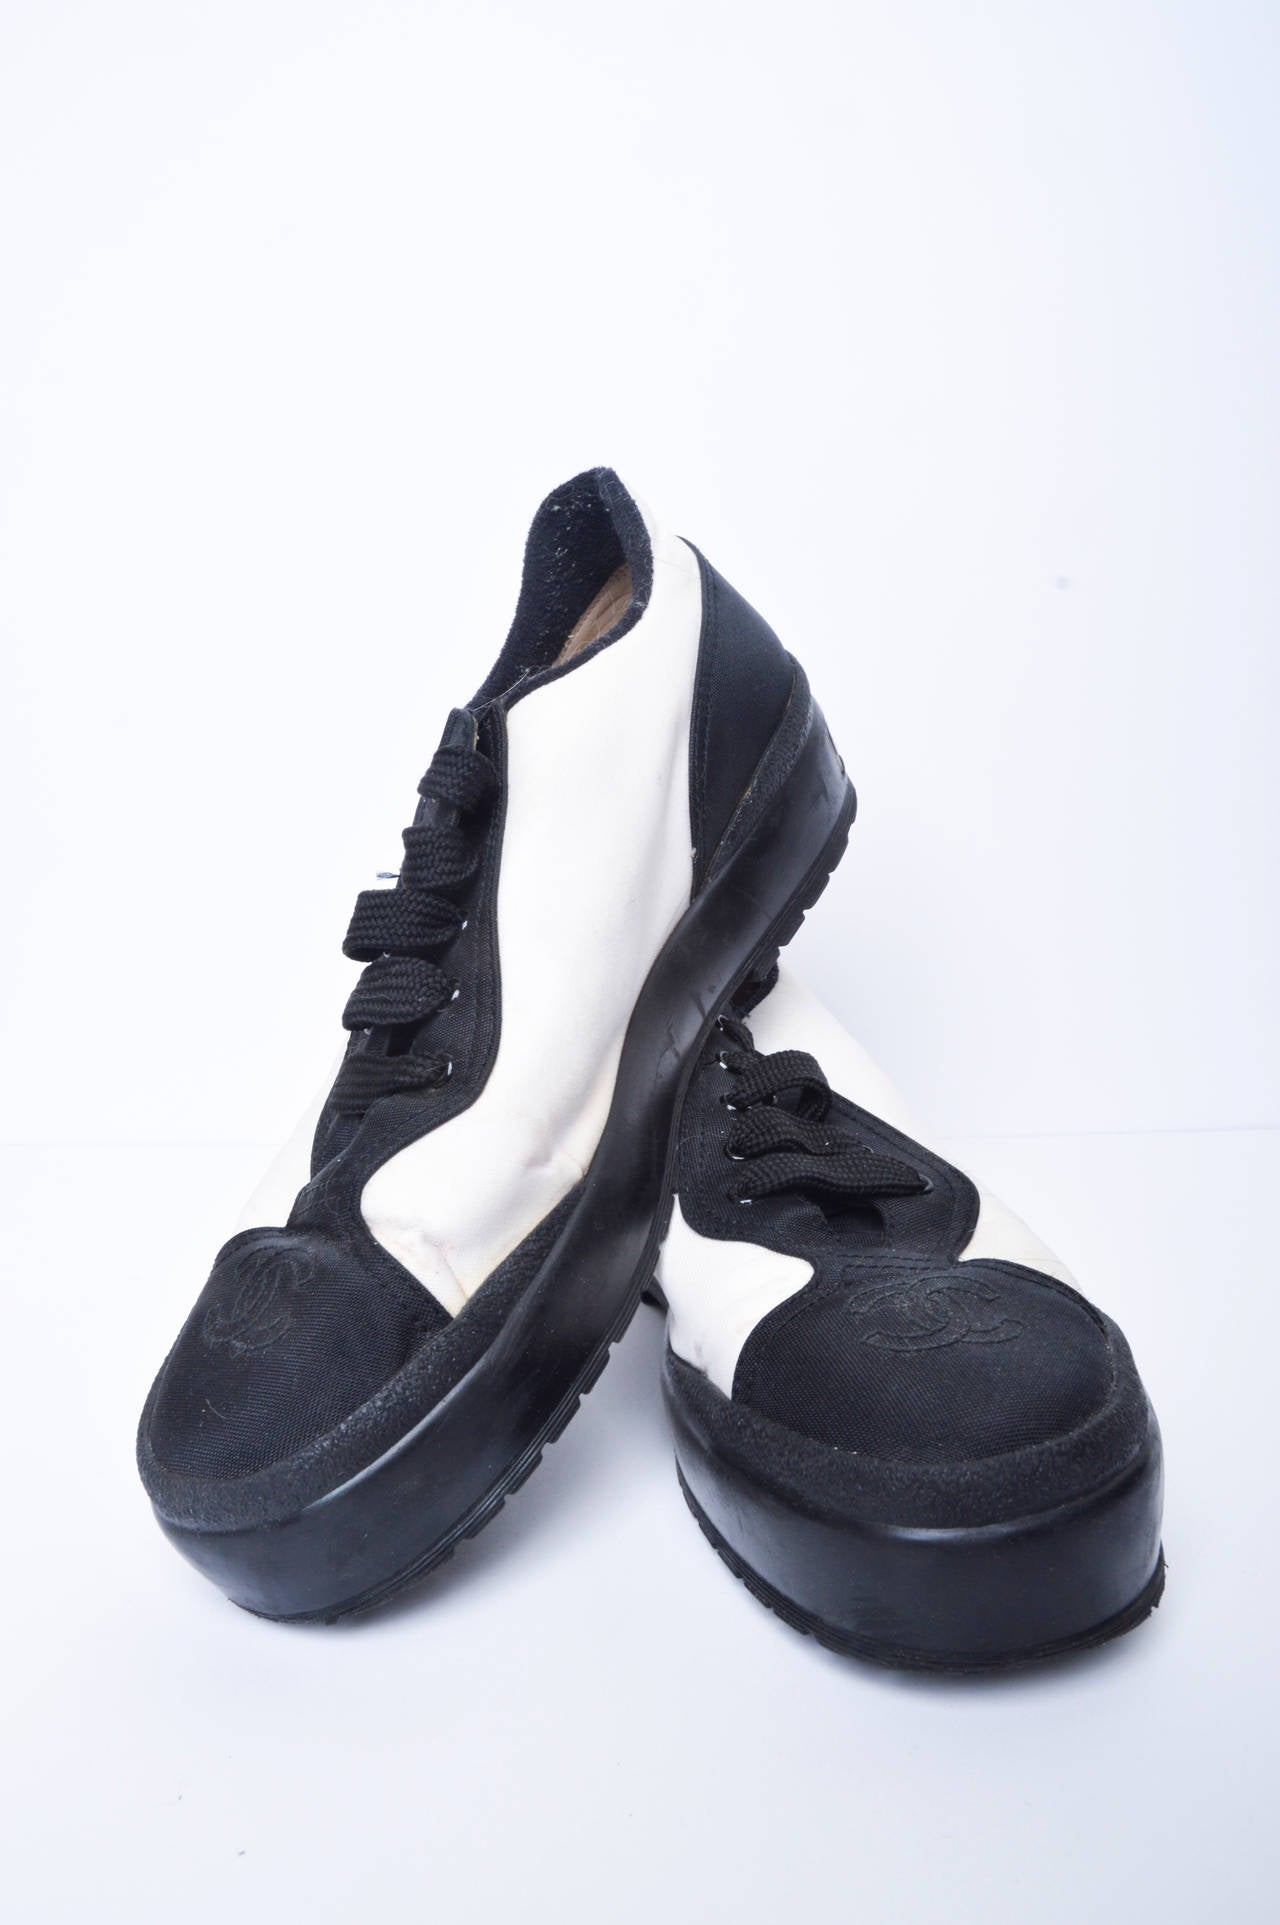 chanel black and white athletic shoes size 38 at 1stdibs